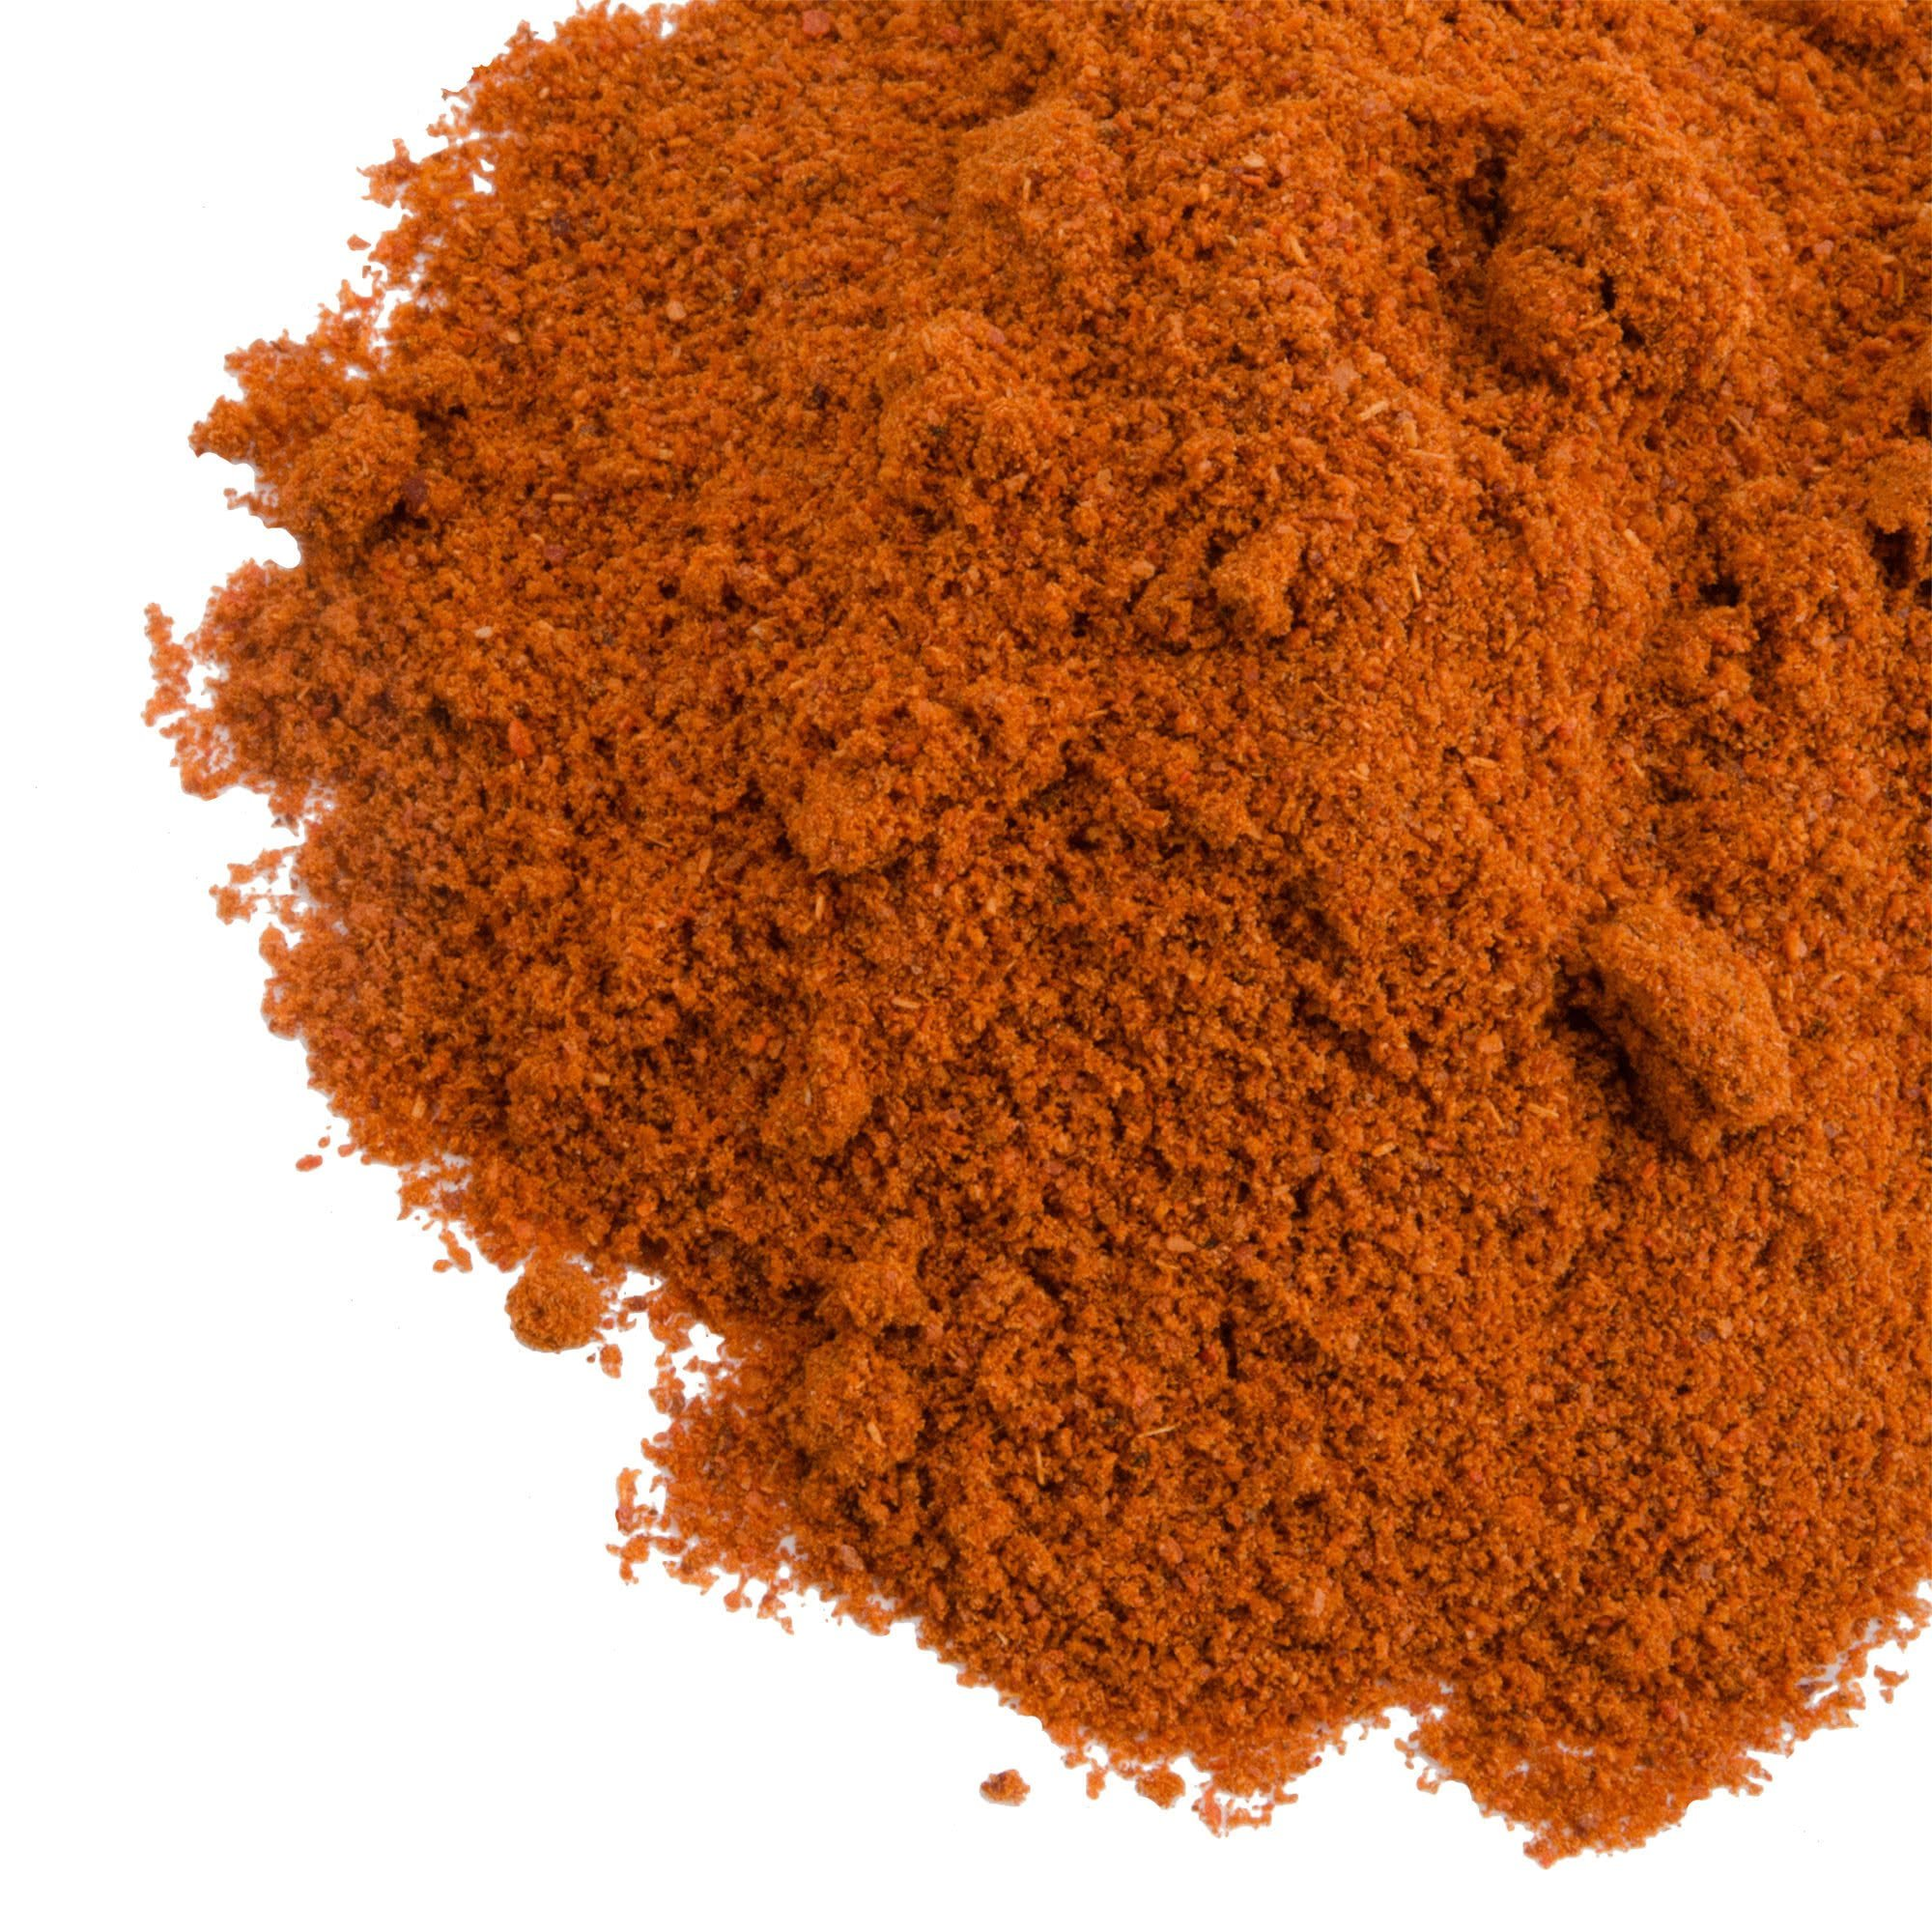 Regal Bulk Ground Cayenne Pepper - 25 lb. by TableTop King (Image #2)